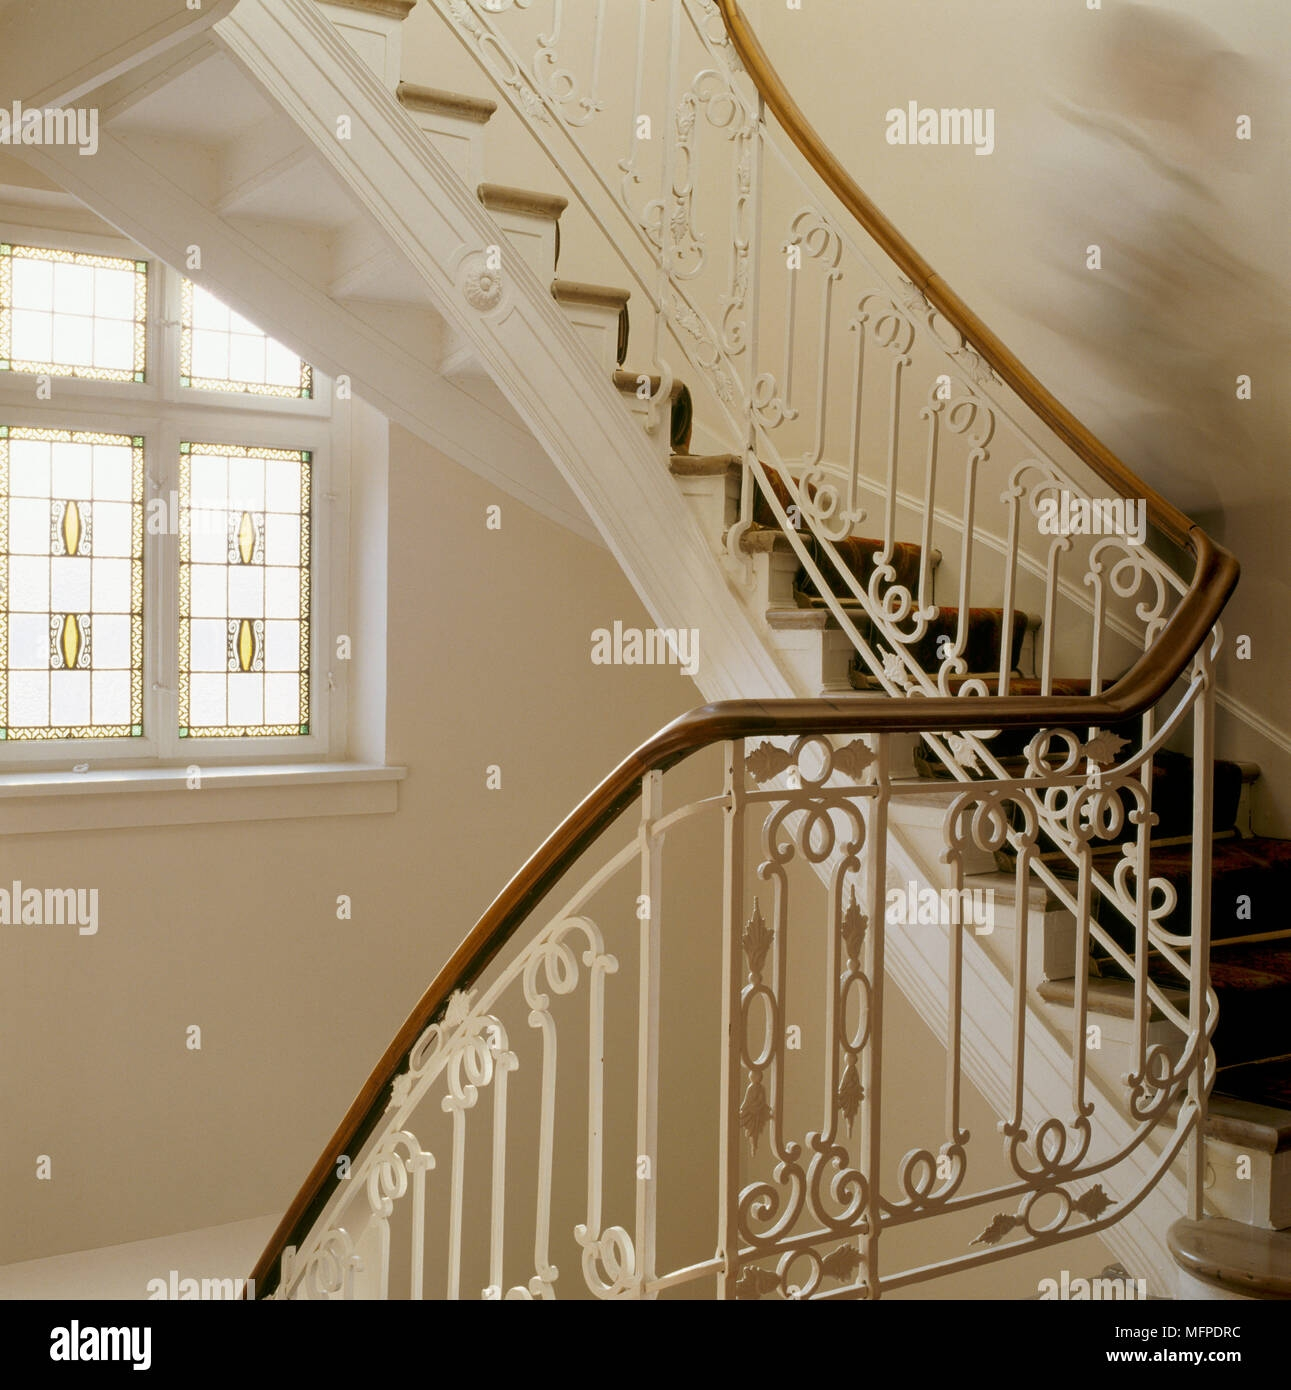 A Detail Of A Traditional Curving Staircase Decorative Wrought | Decorative Handrails For Stairs | Brushed Nickel | Popular | Corner Interior Stair | Exterior Irregular Stair | Iron Staircase